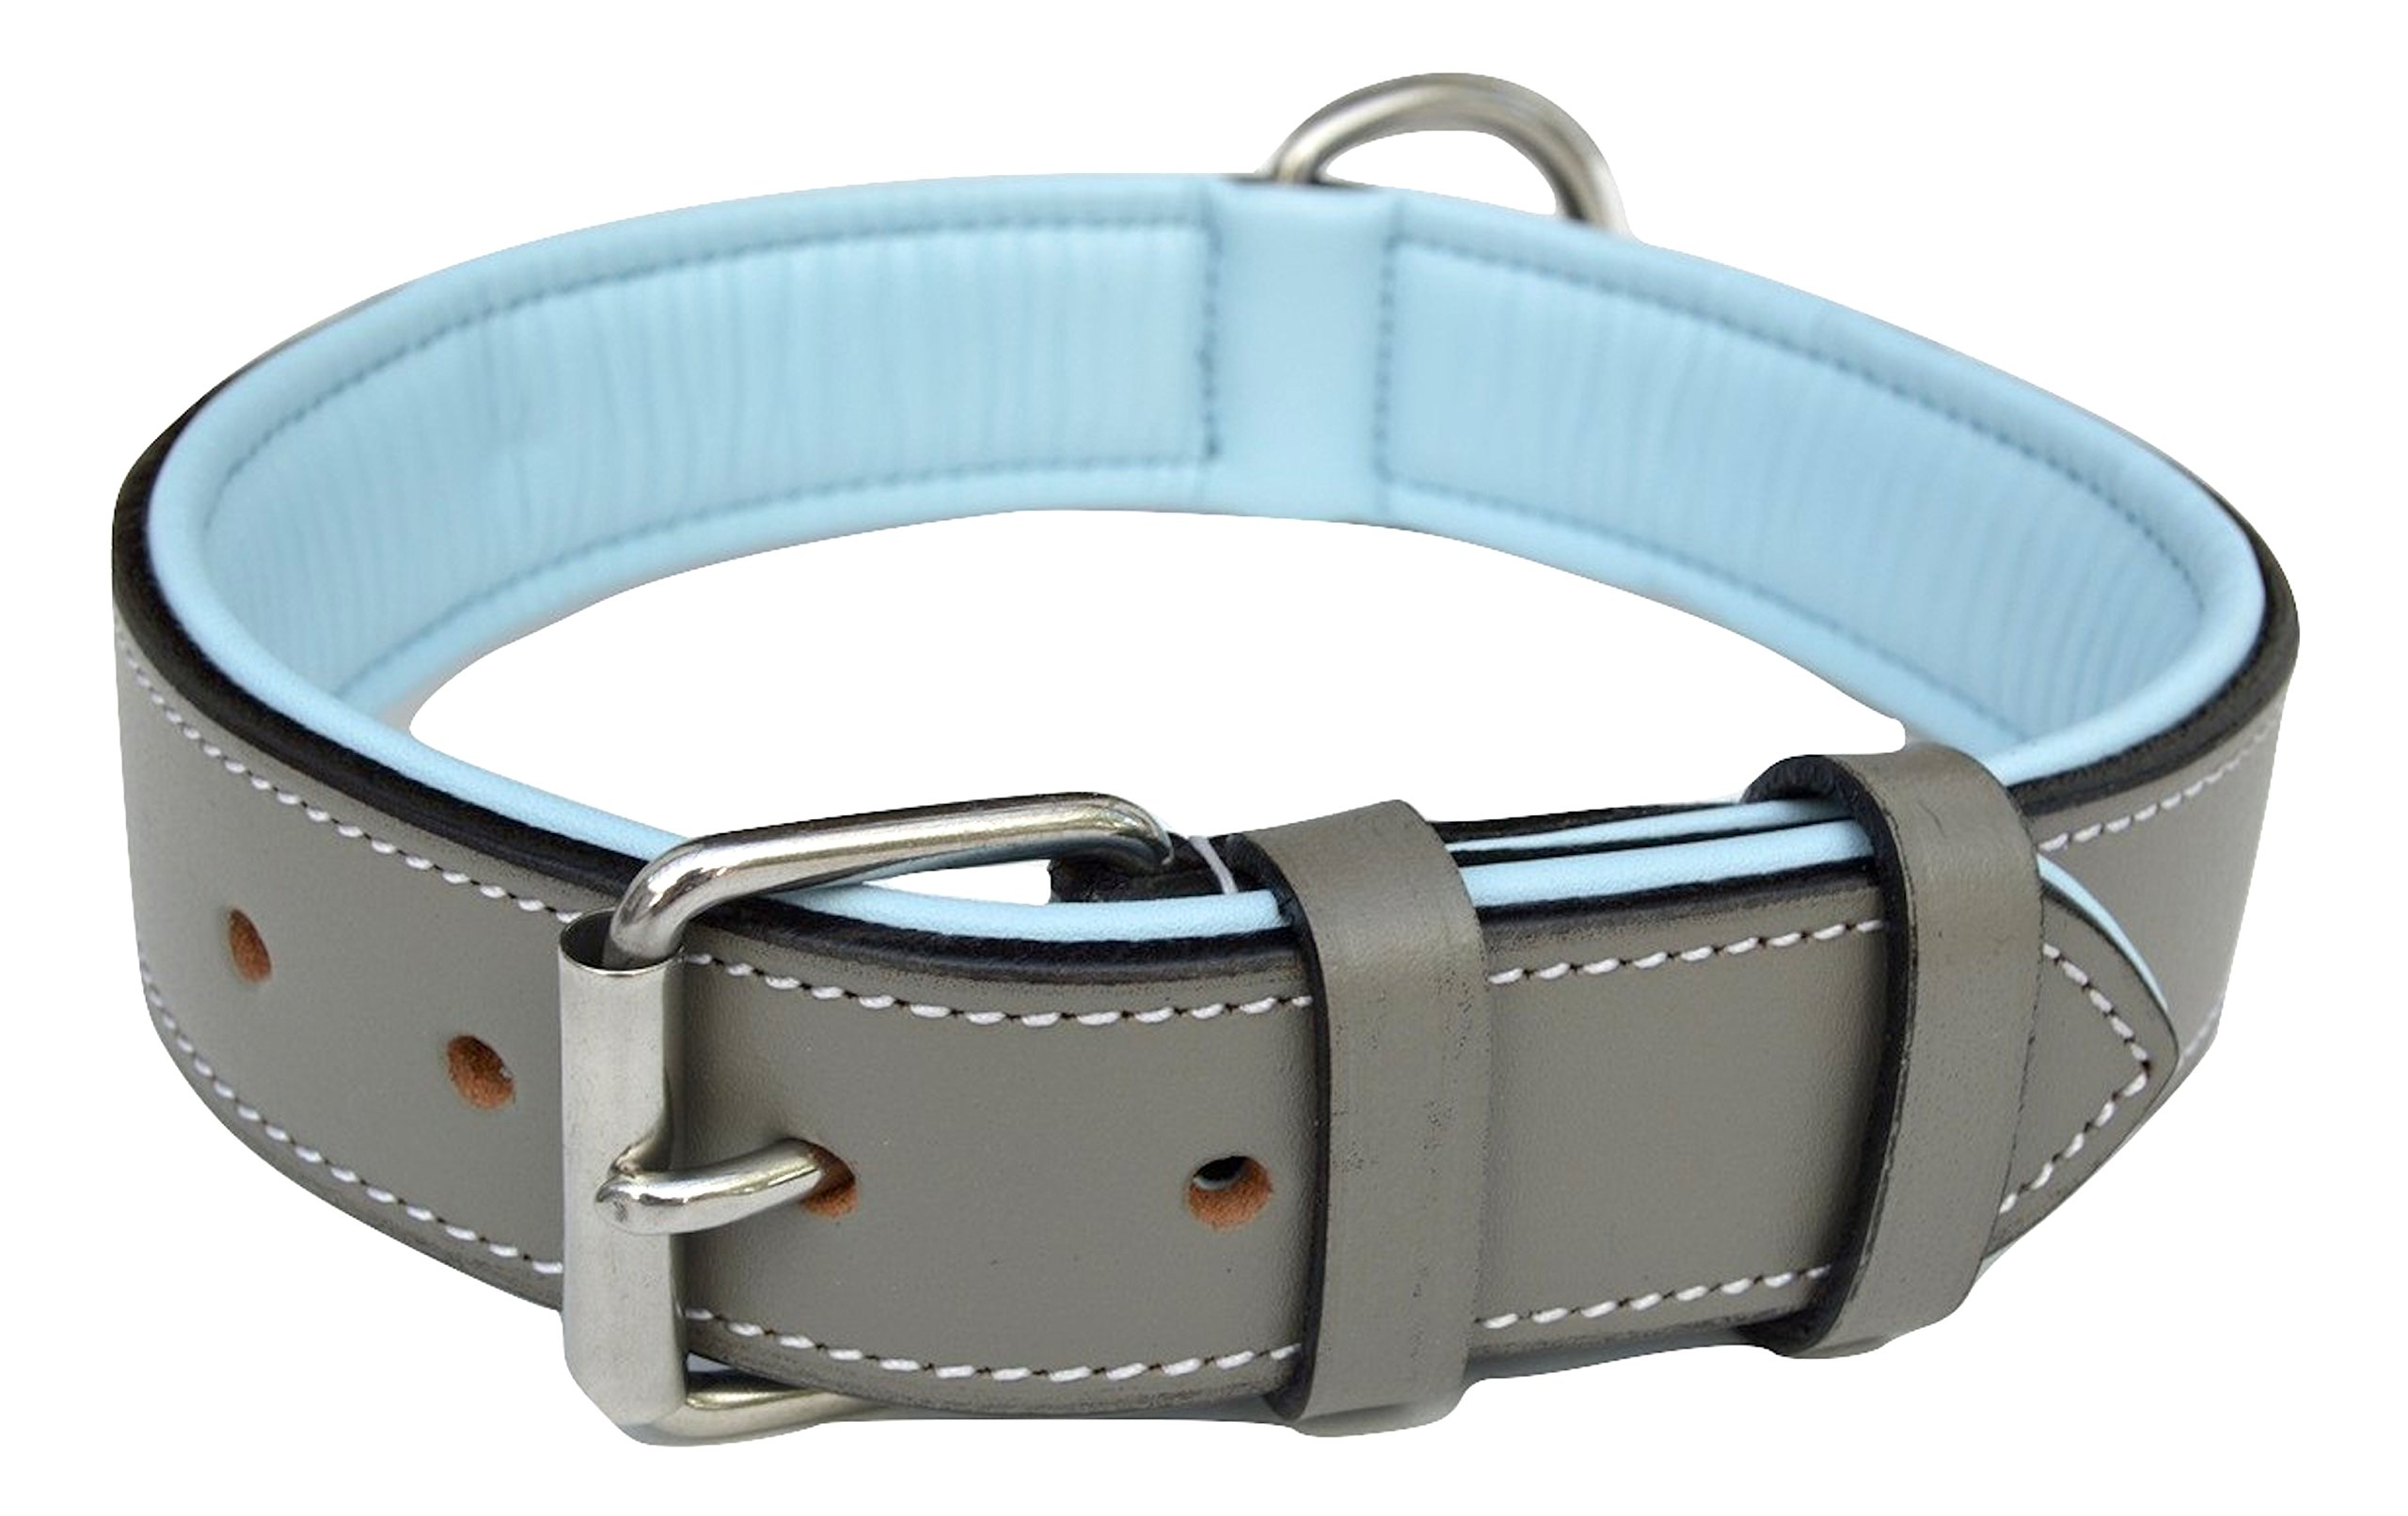 Soft Touch Collars Padded Leather Dog Collar, Gray and Blue, Size Large, Genuine Real Full Grain Leather